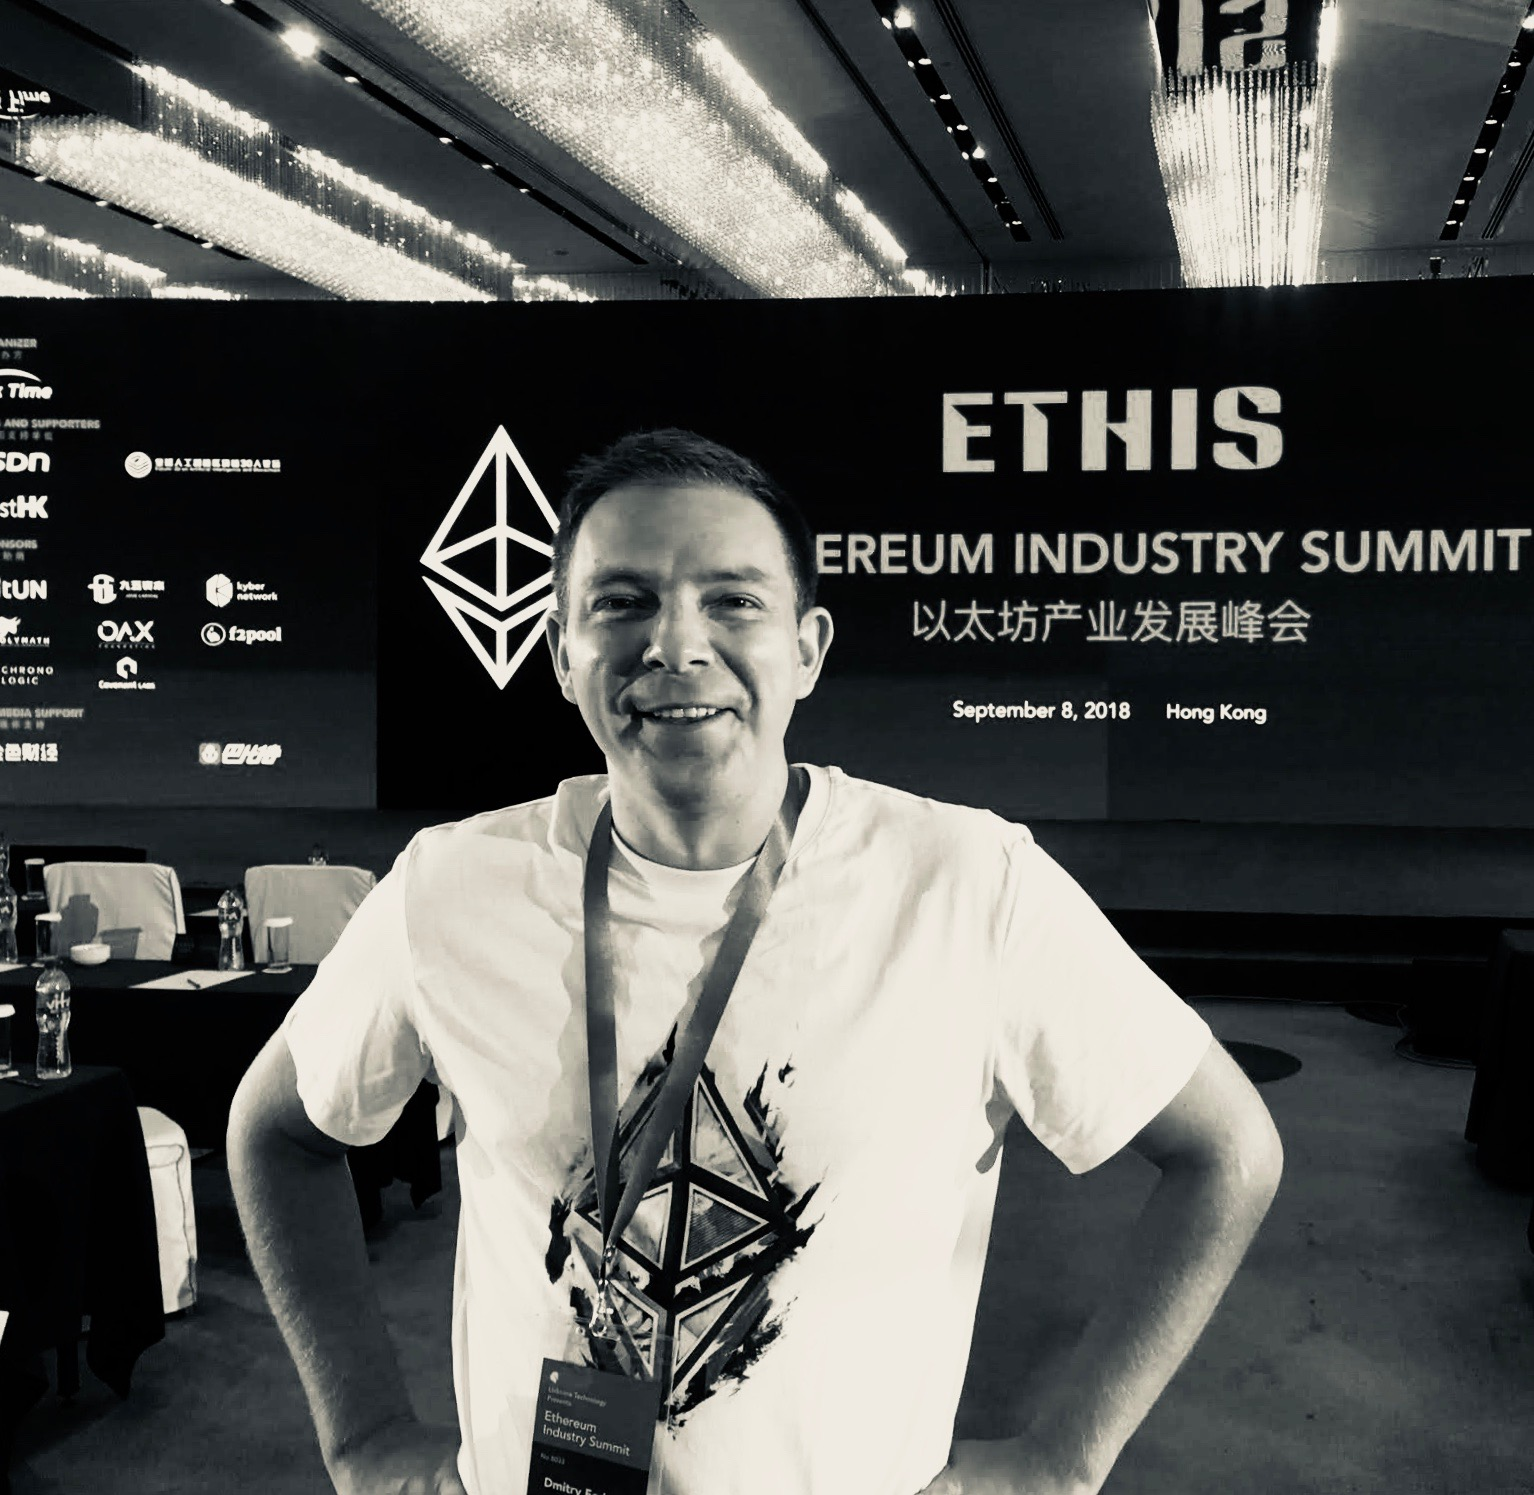 Dmitry Fedotov @ETHIS Hong Kong Summit